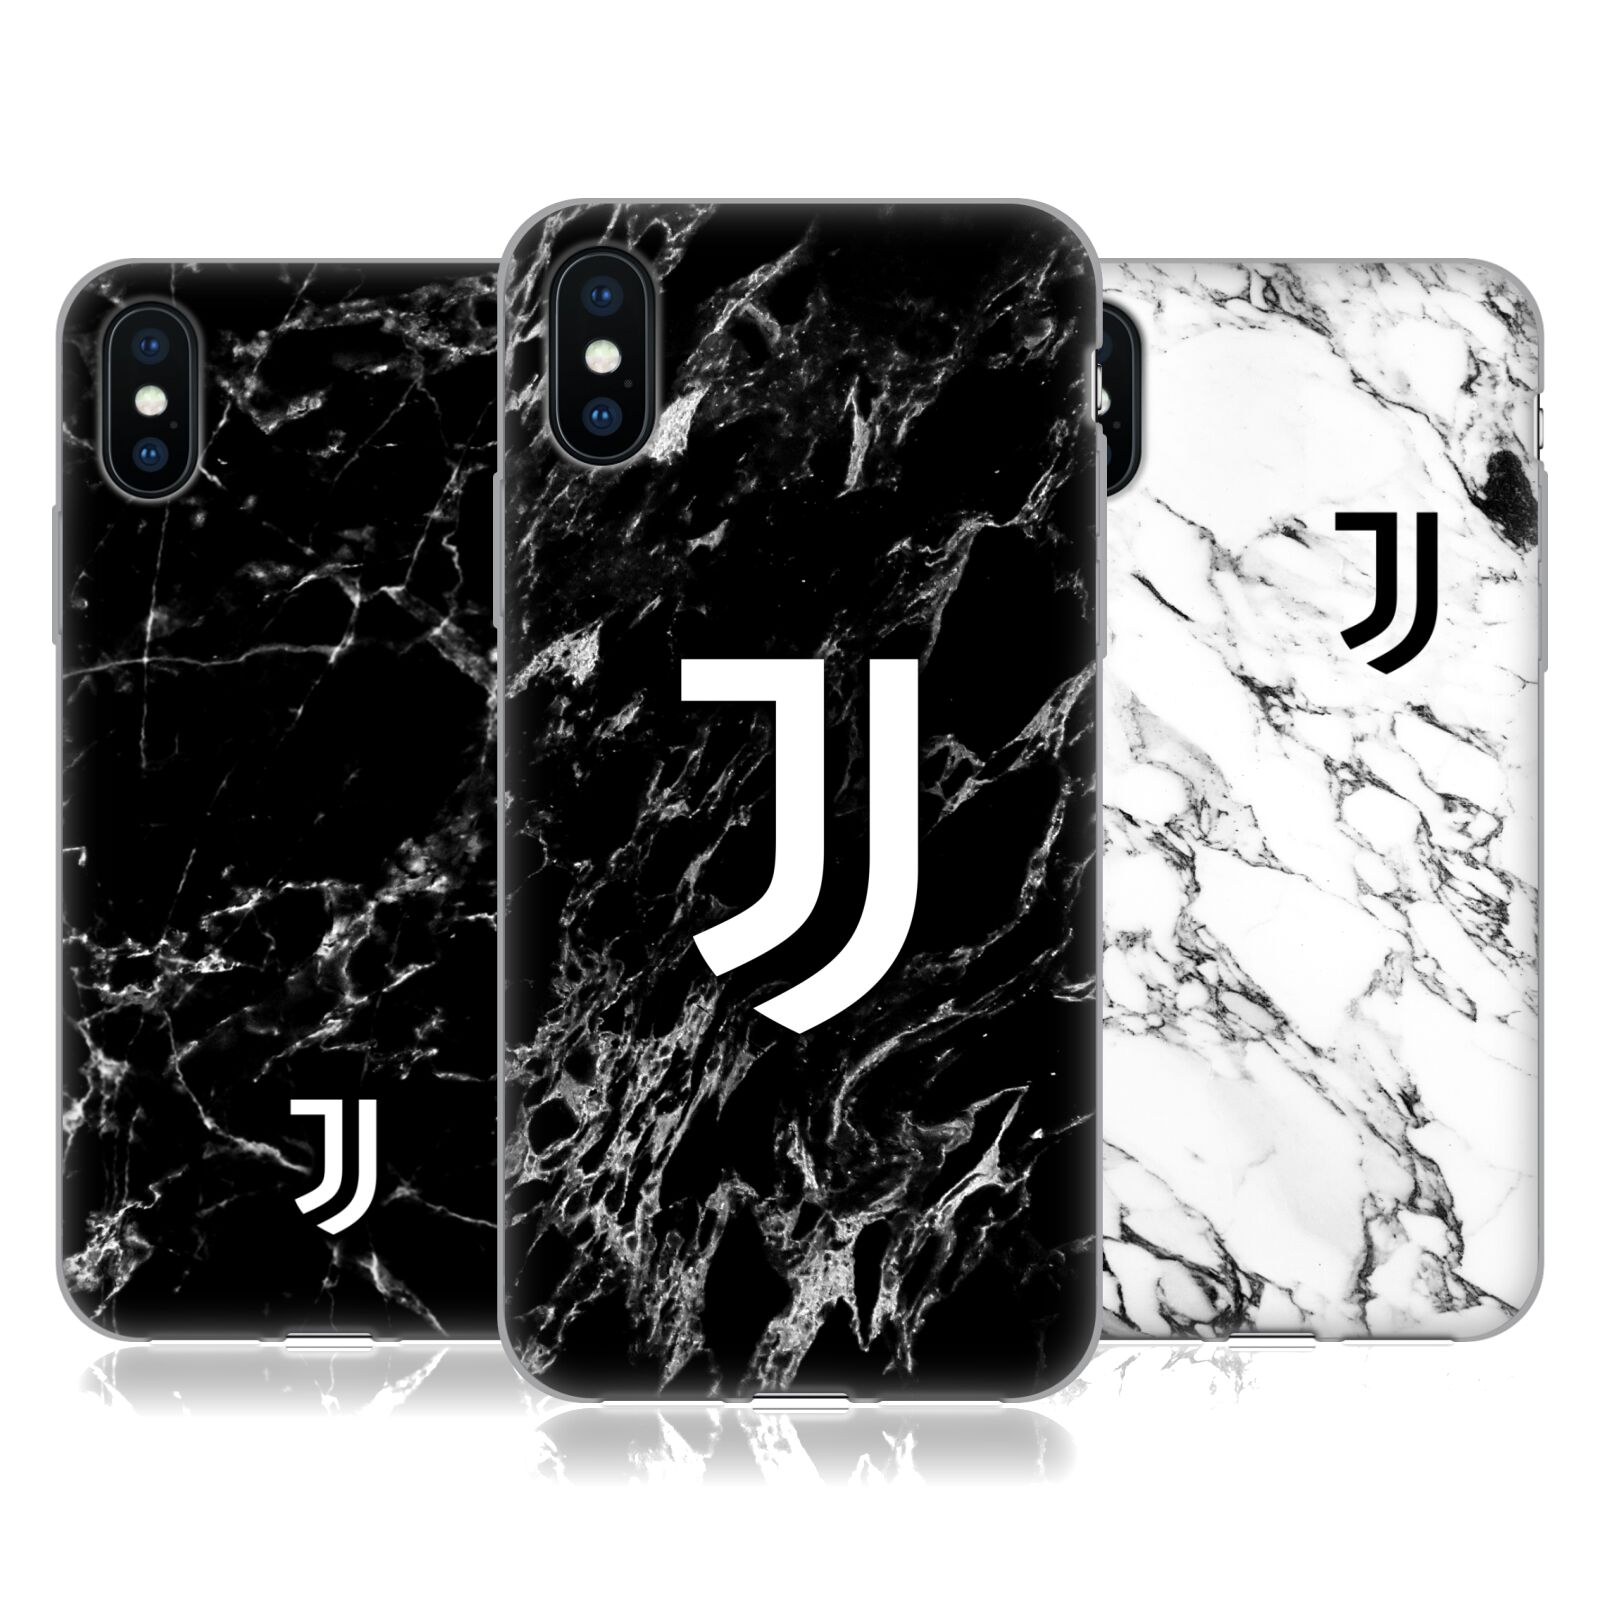 Juventus Football Club <!--translate-lineup-->2017/18 Marble<!--translate-lineup-->